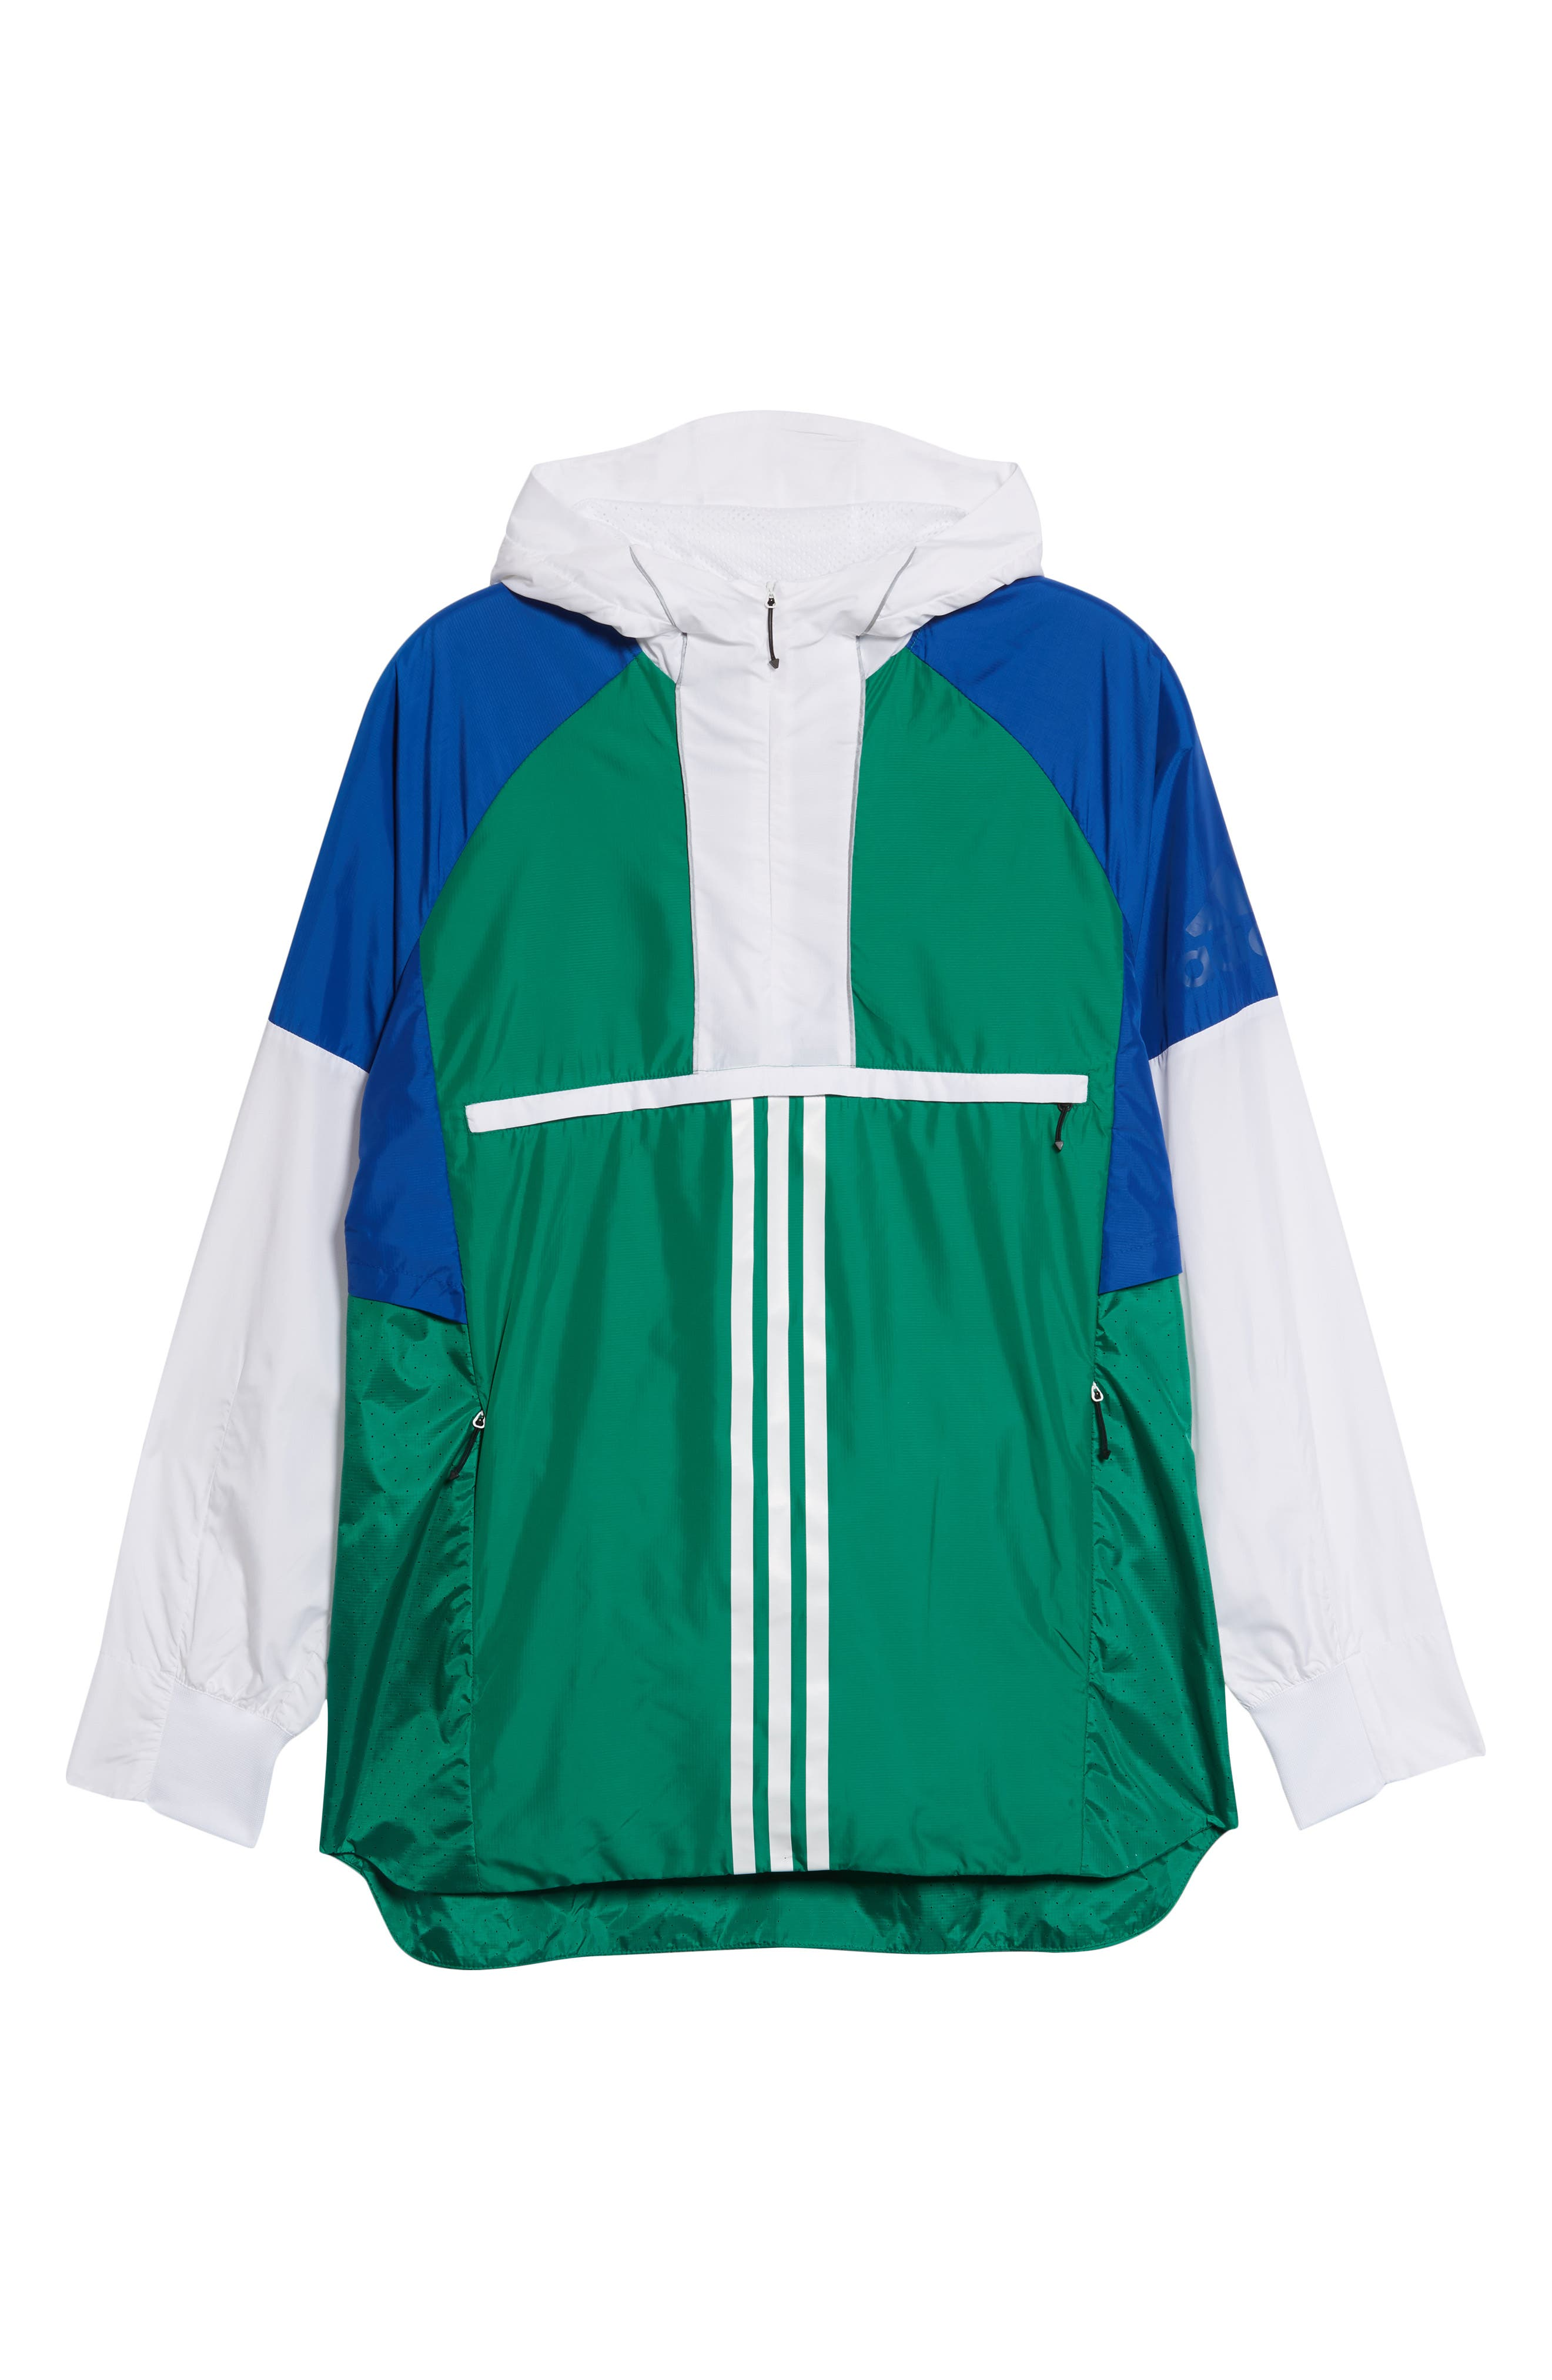 ID Wovenshell Anorak,                             Alternate thumbnail 5, color,                             320